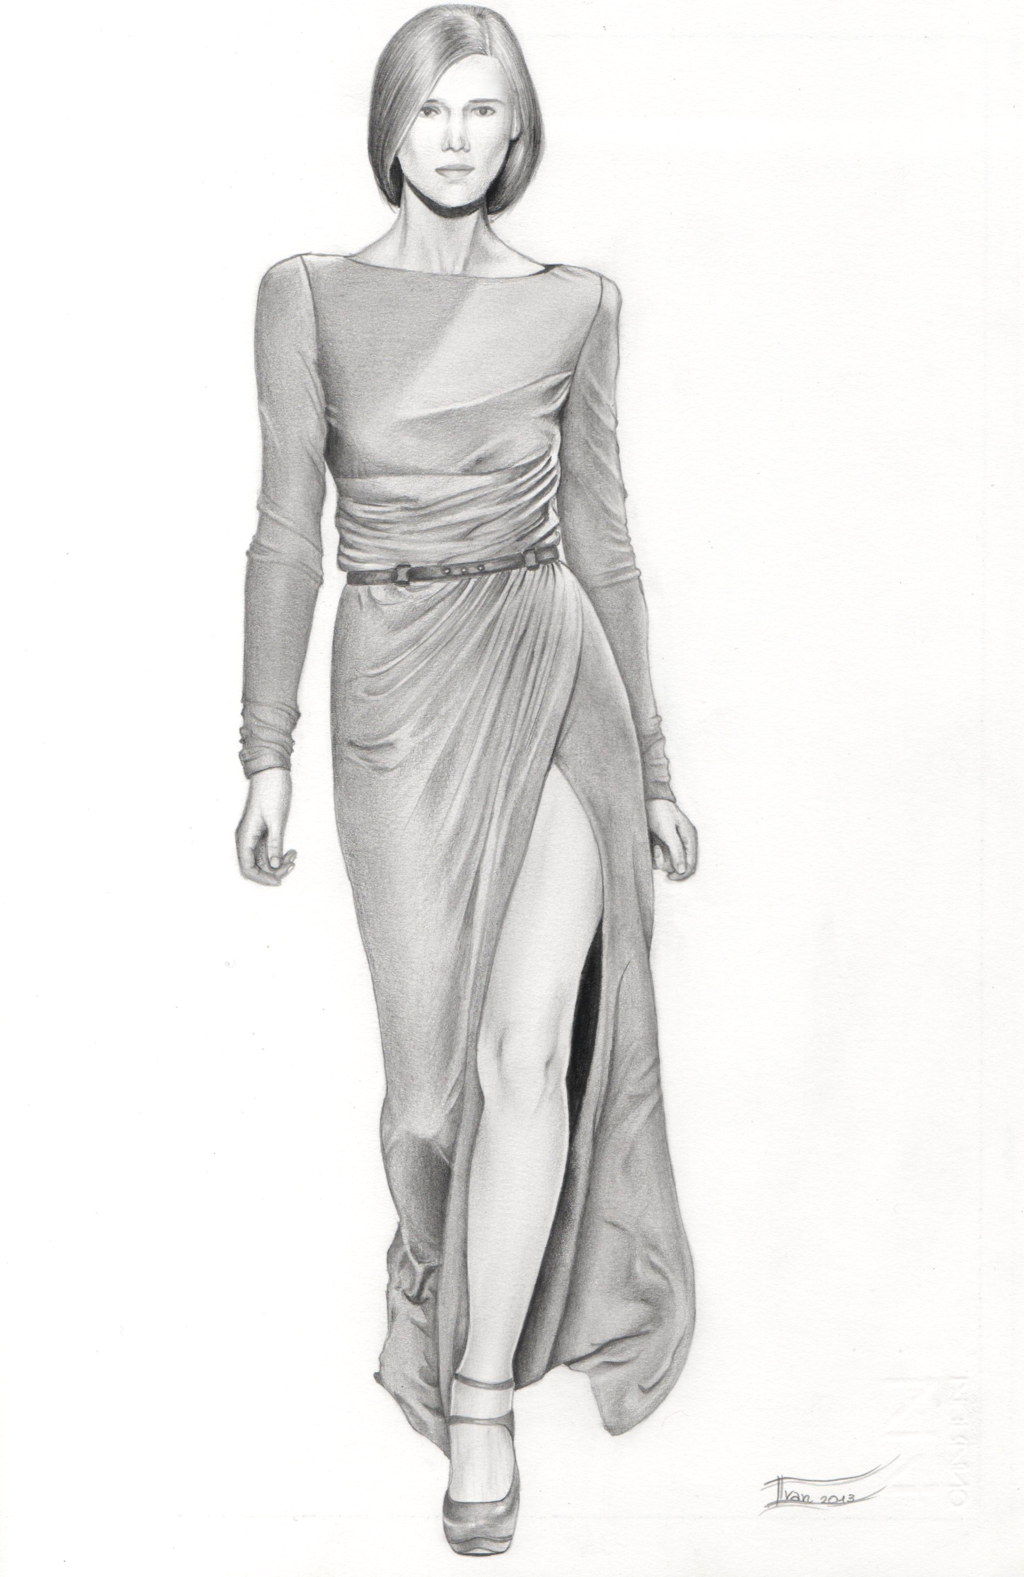 Drawn women dress drawing Of of a :) by